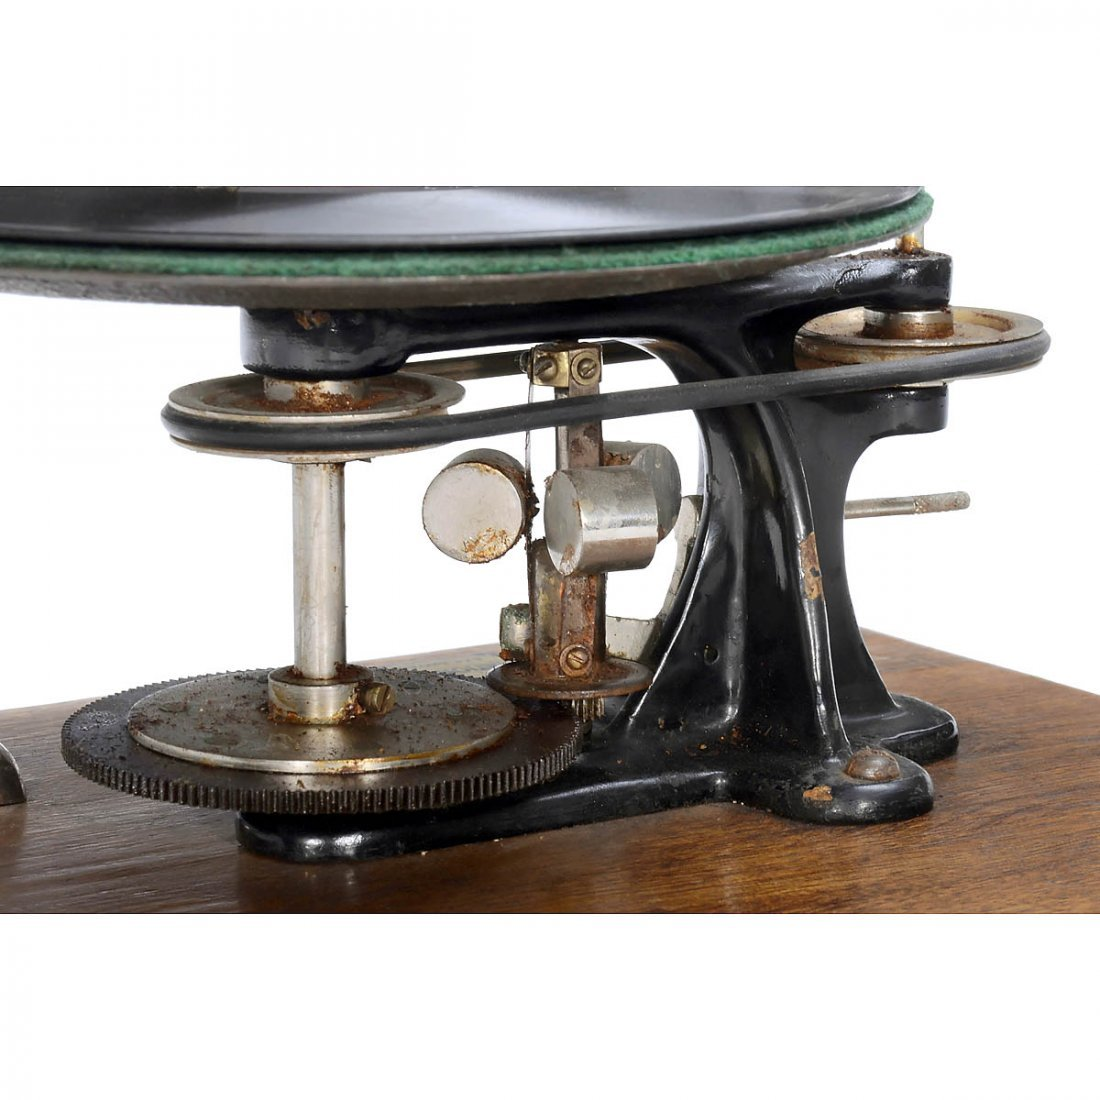 Emile Berliner-Style Hand-Cranked Gramophone - 2